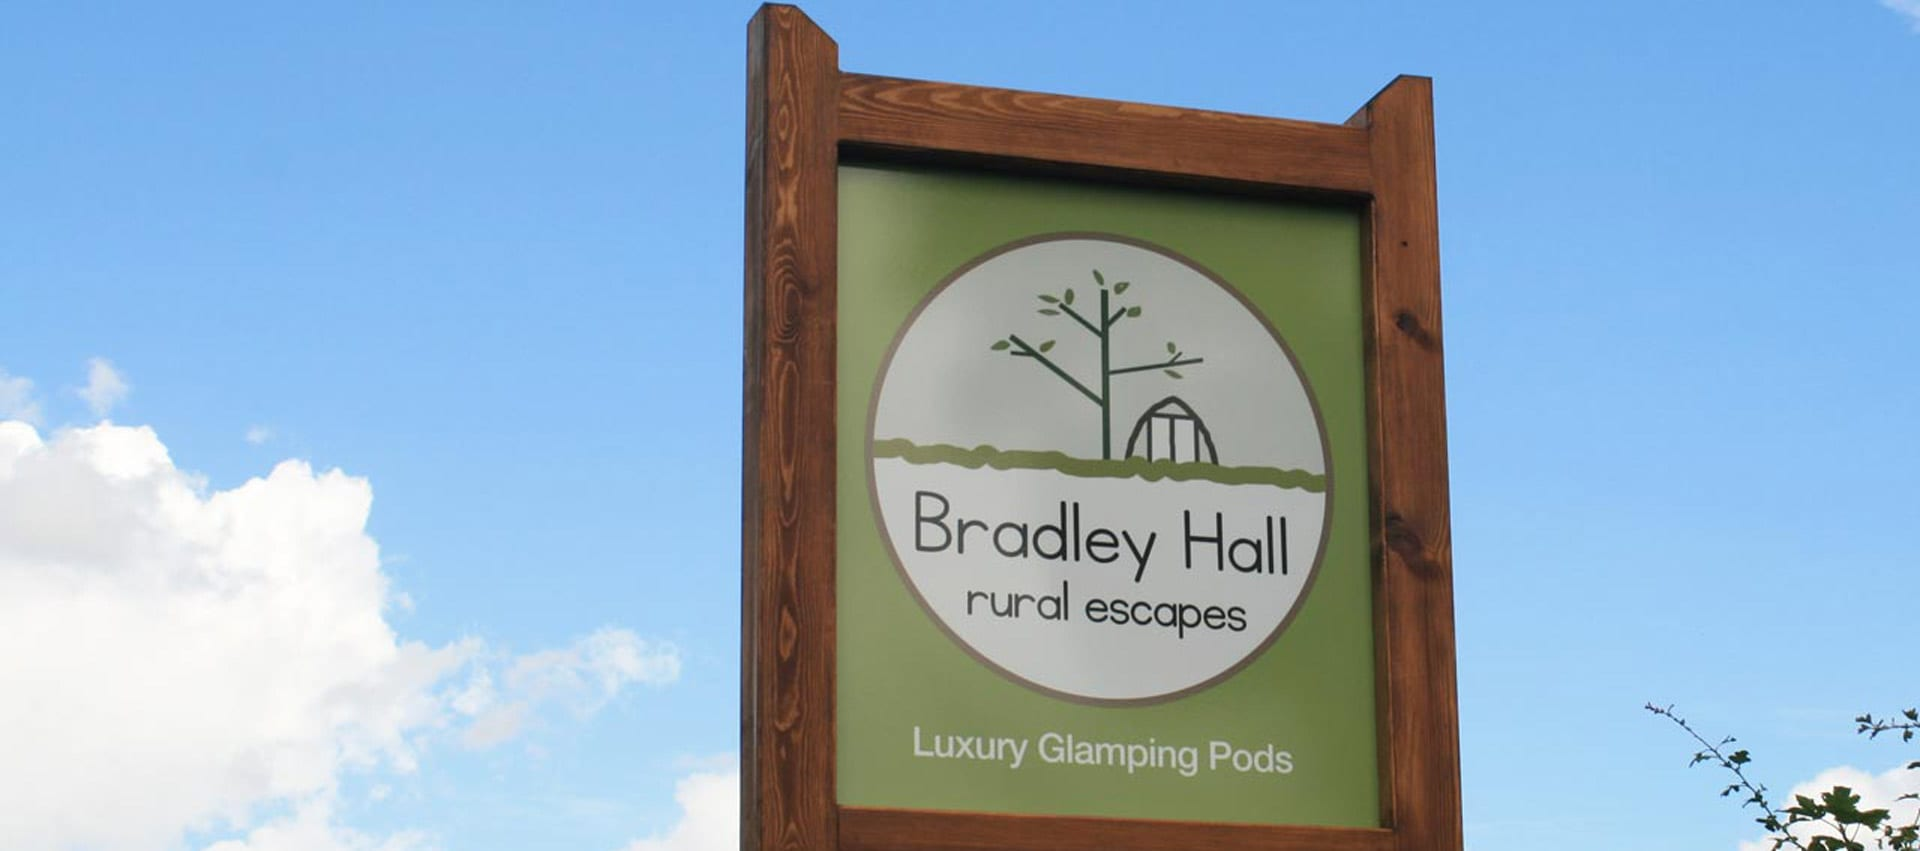 Signpost at Bradley Hall Rural Escapes - Luxurious Glamping Pods on a working farm in Cheshire